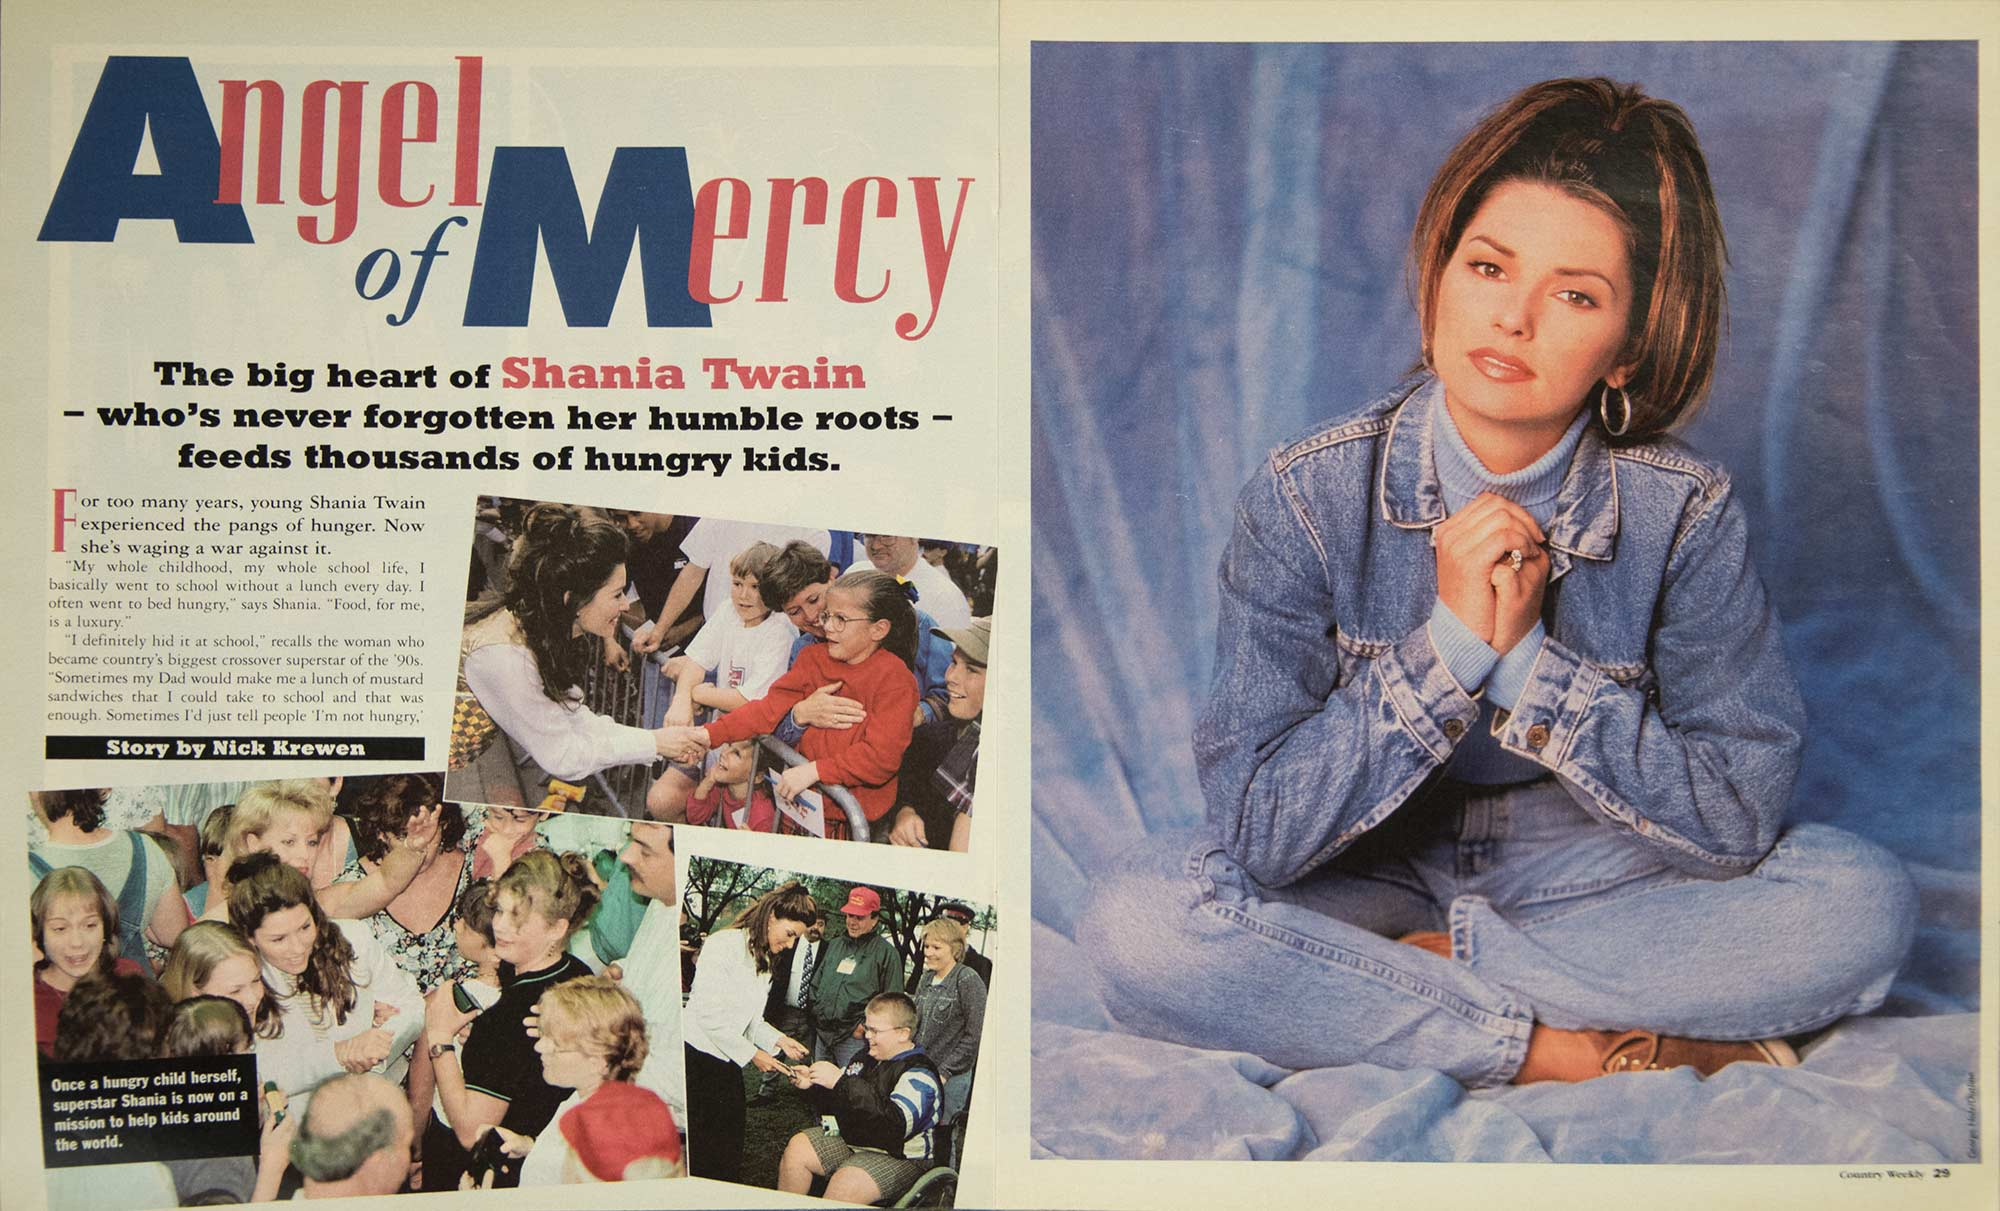 Shania Twain: Angel of Mercy Feeds Thousands of Hungry Kids